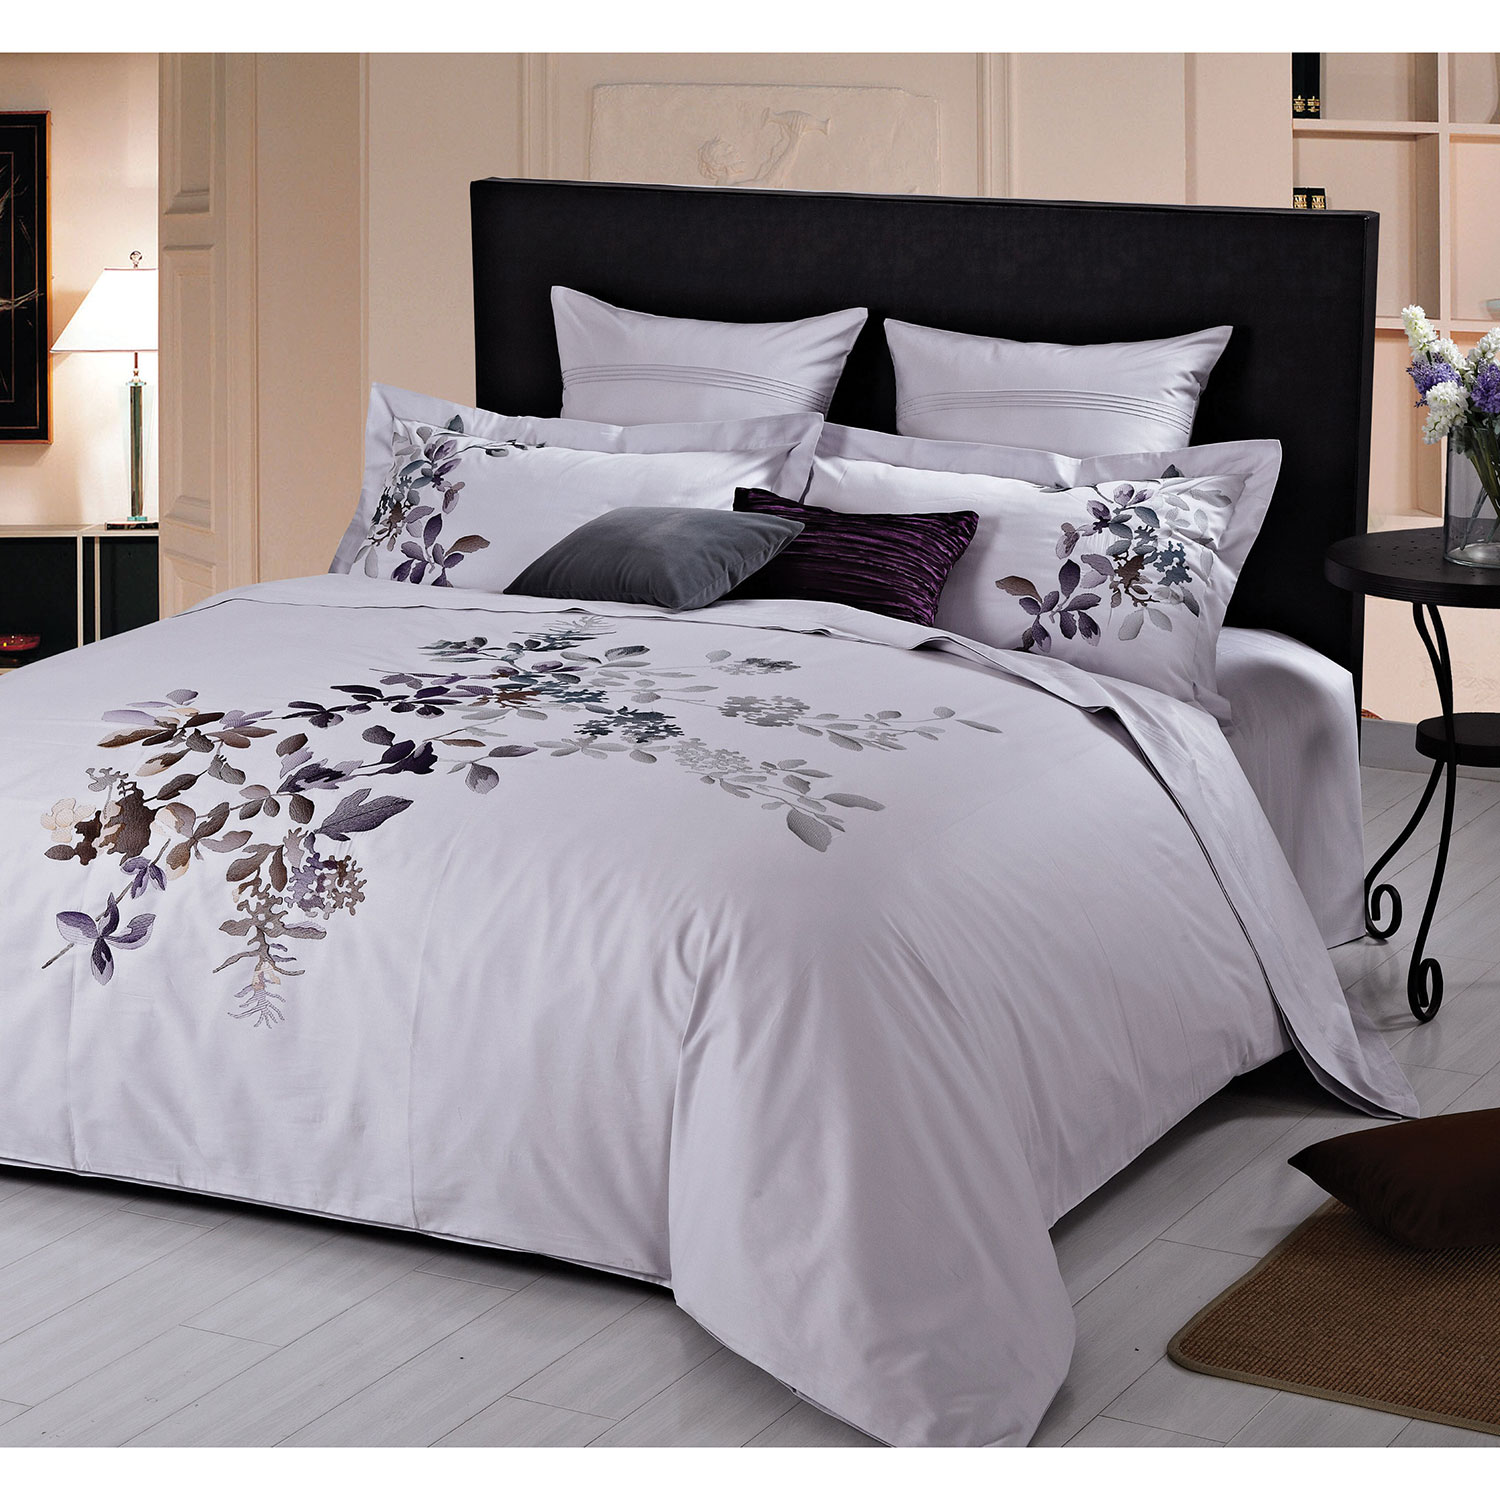 maholi rare orchids collection  thread count cotton percale  - maholi rare orchids collection  thread count cotton percale duvet coverset  queen  purple  duvet covers  sets  best buy canada